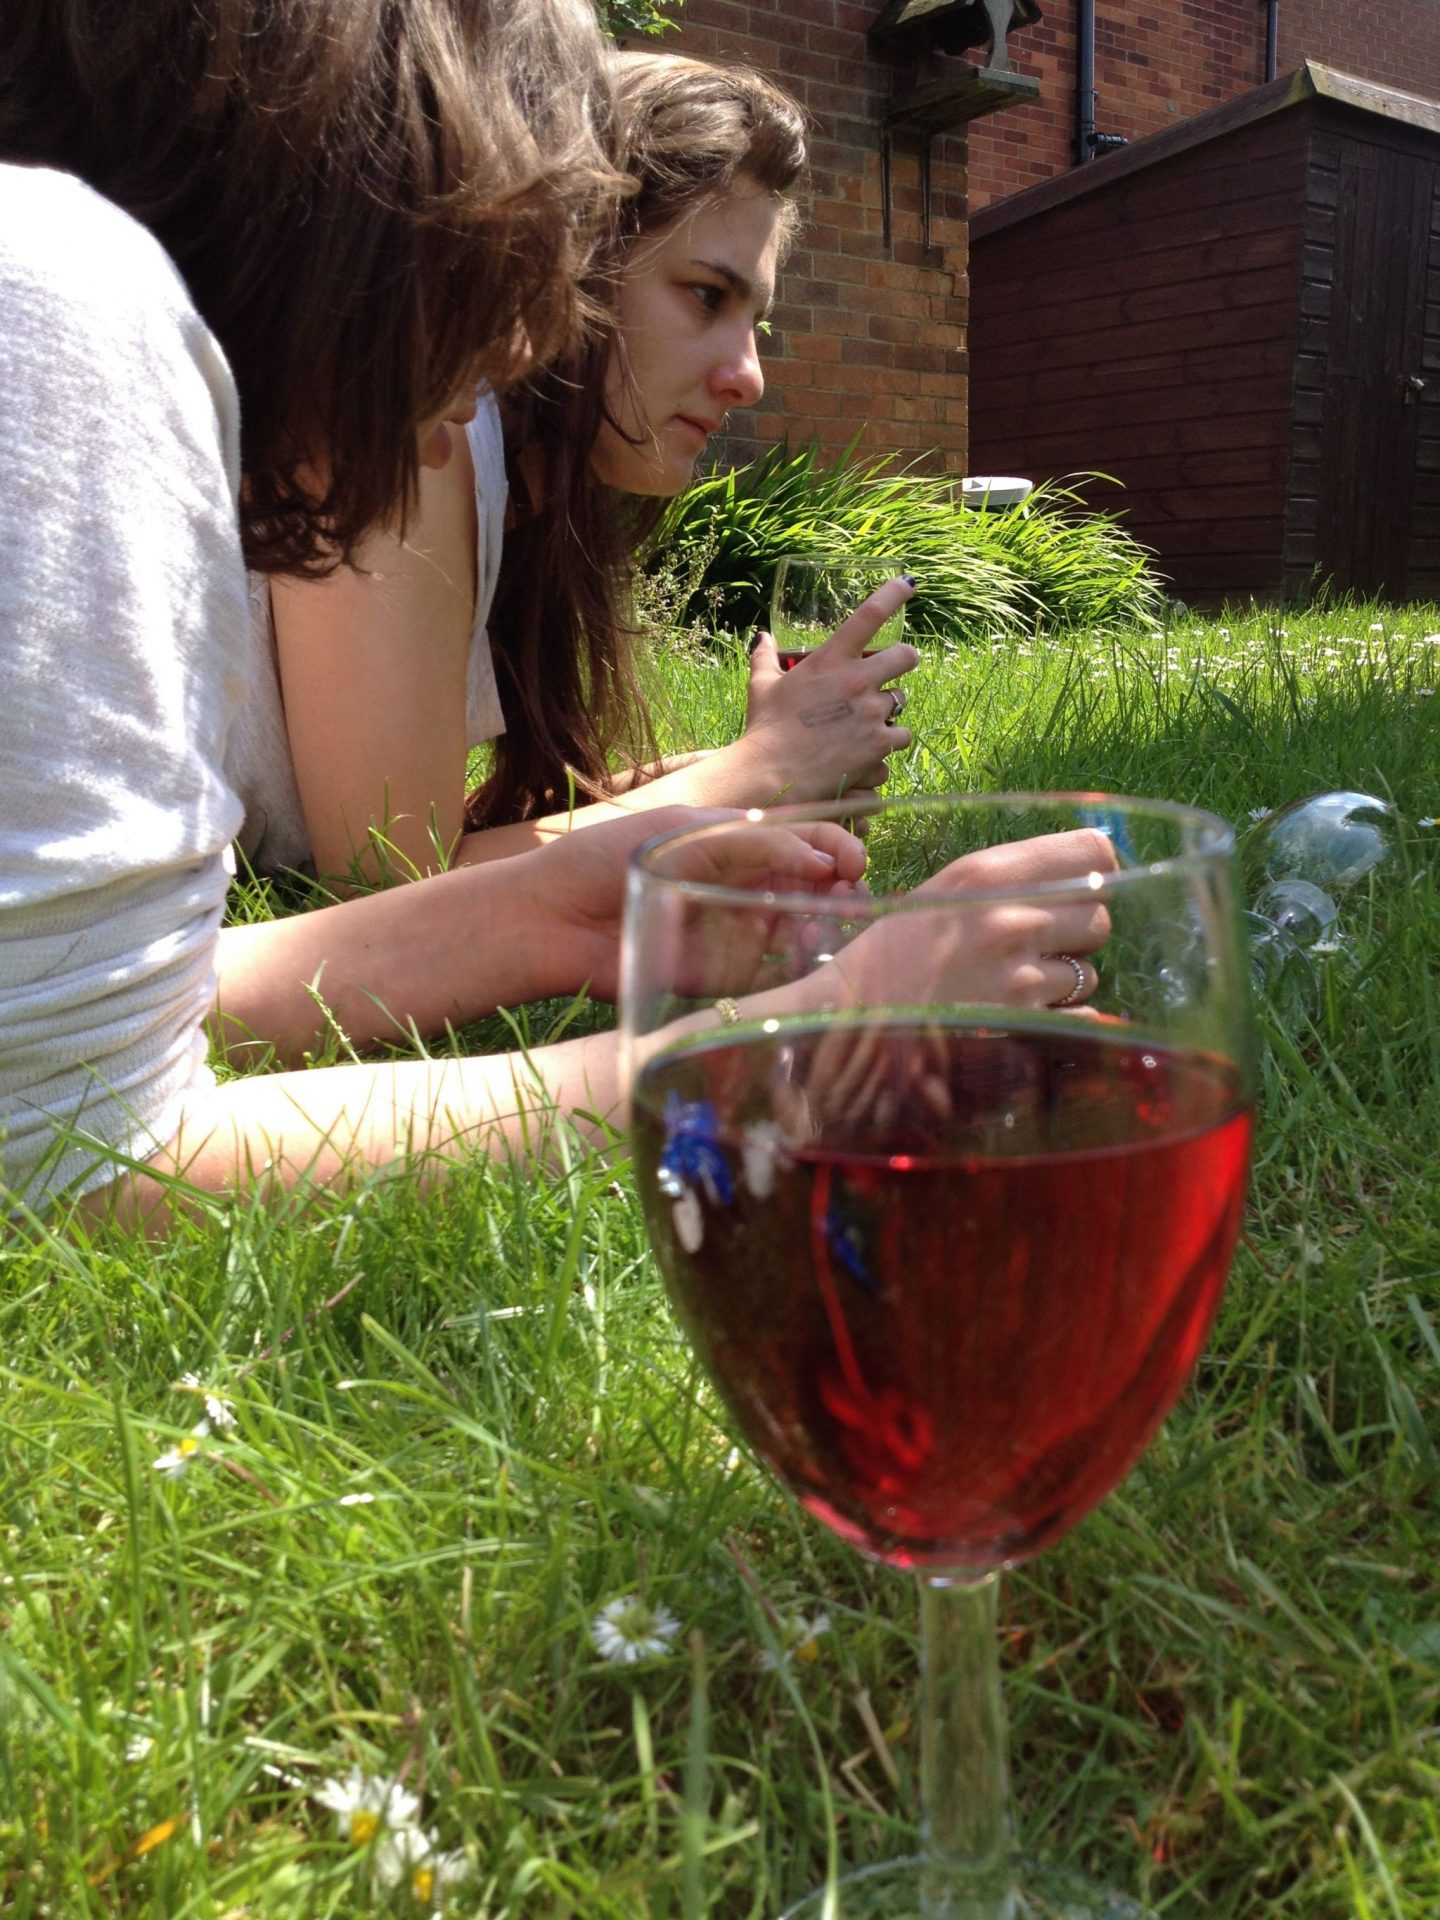 Drinks on the lawn in Manchester